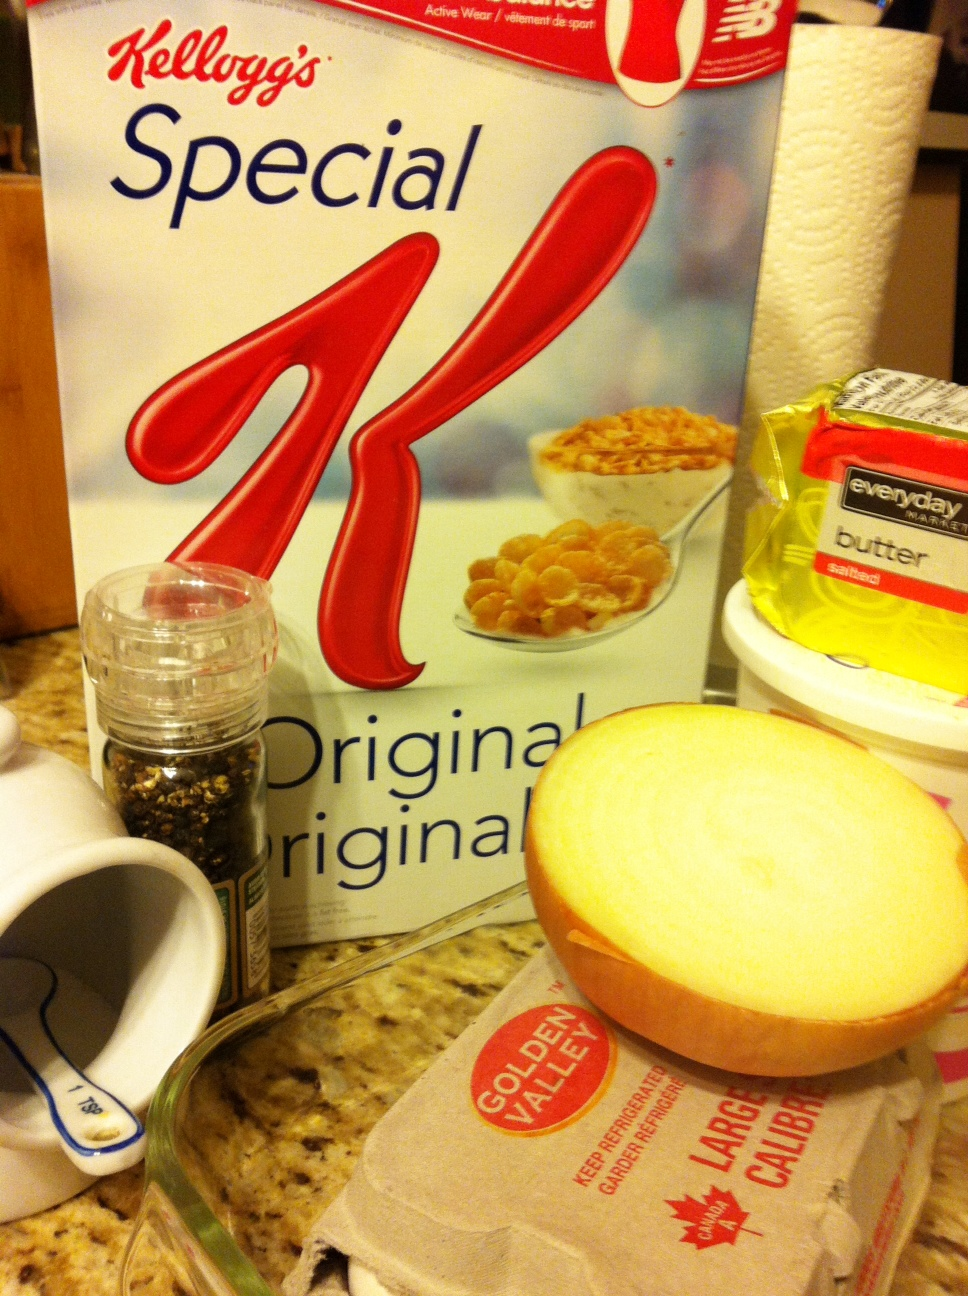 Candice S Cusina Hooray For Special K Loaf With Longanisa